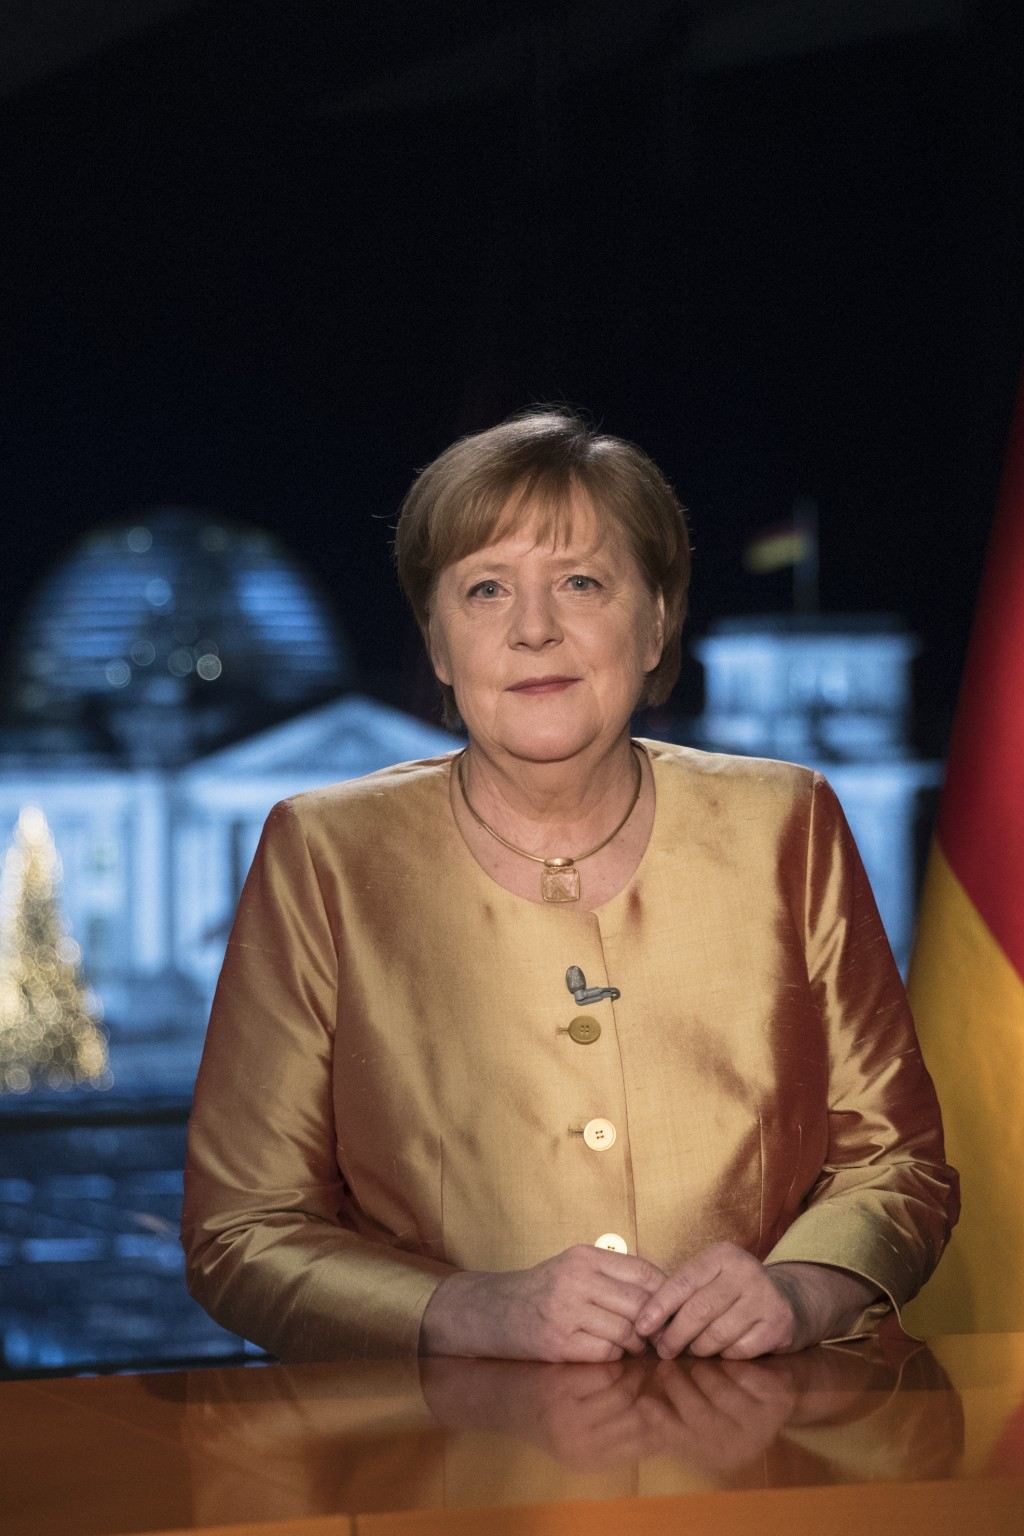 EMBARGO - UNTIL DEC. 31 00:00 A.M. CET - FREE FOR THURSDAY DEC. 31, 2020 NEWSPAPERS - German Chancellor Angela Merkel poses for photographs after the ...